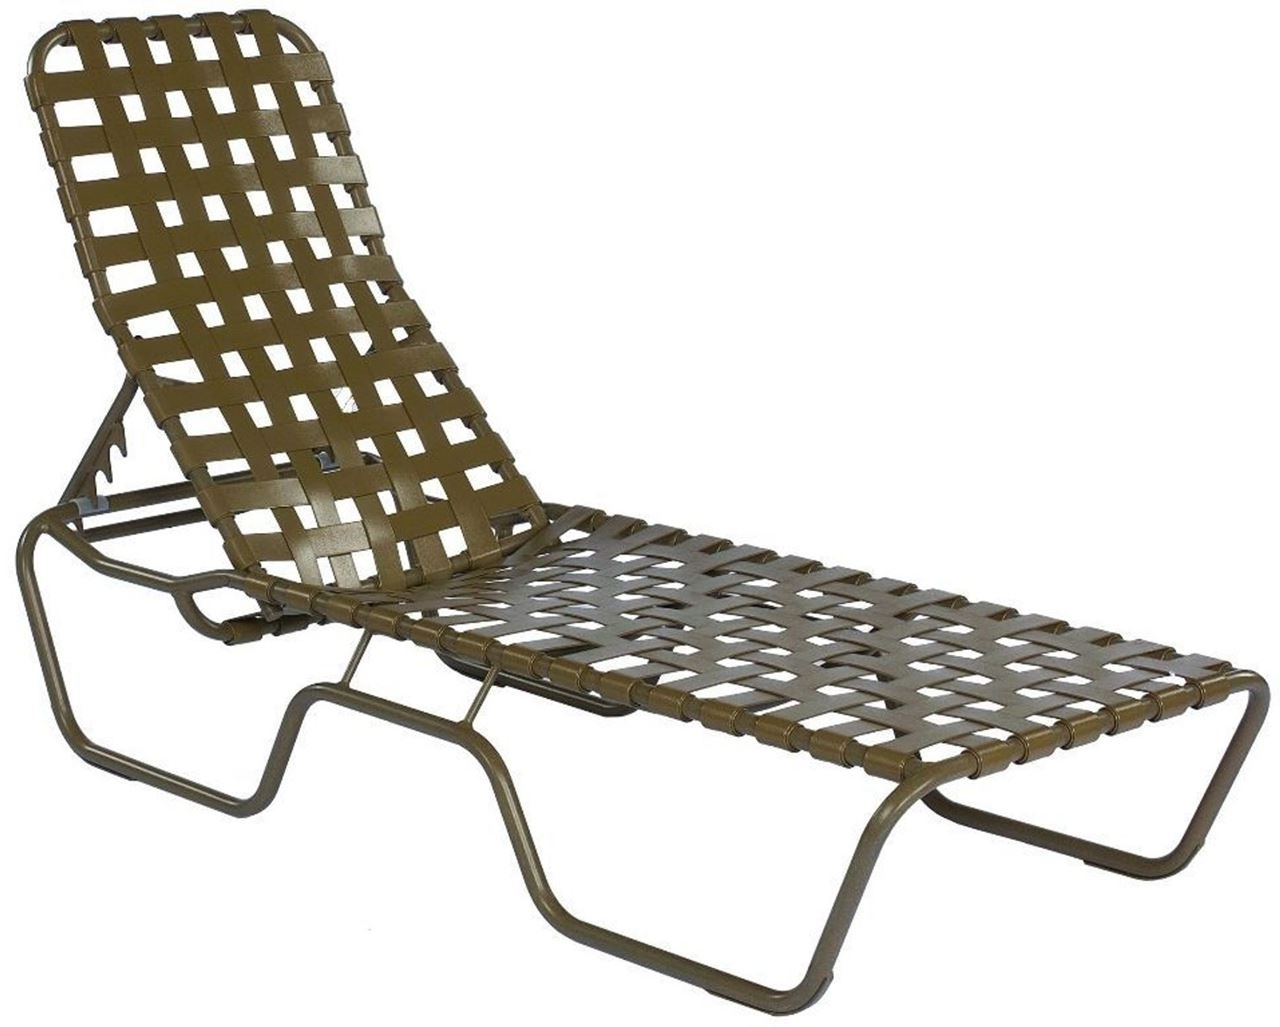 2017 Commercial Basketweave Strap Chaise Lounge Sanibel Stacking Pertaining To Commercial Outdoor Chaise Lounge Chairs (View 5 of 15)